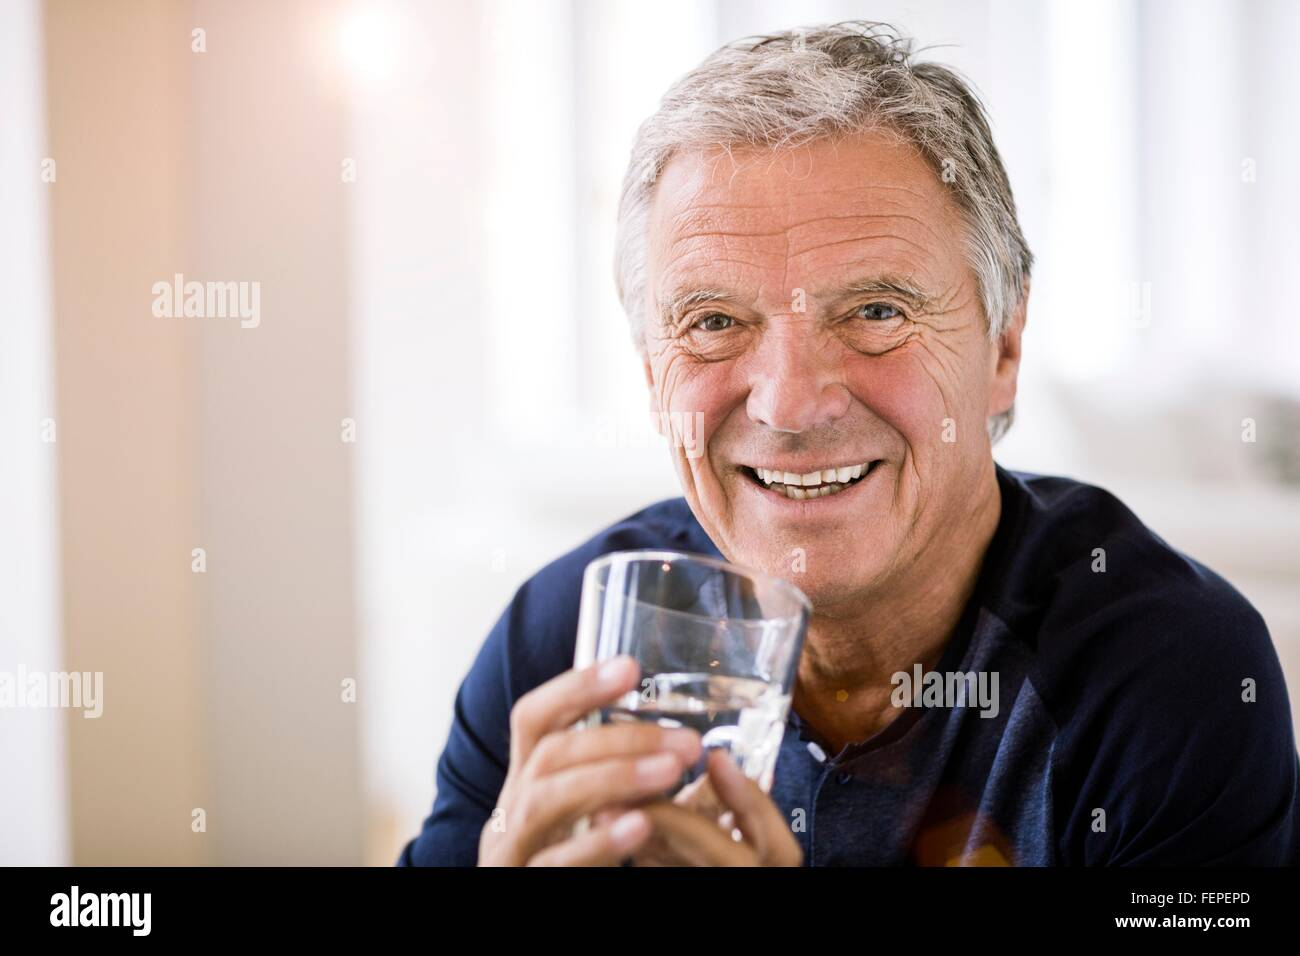 Portrait of senior man holding tumbler of water looking at camera smiling - Stock Image